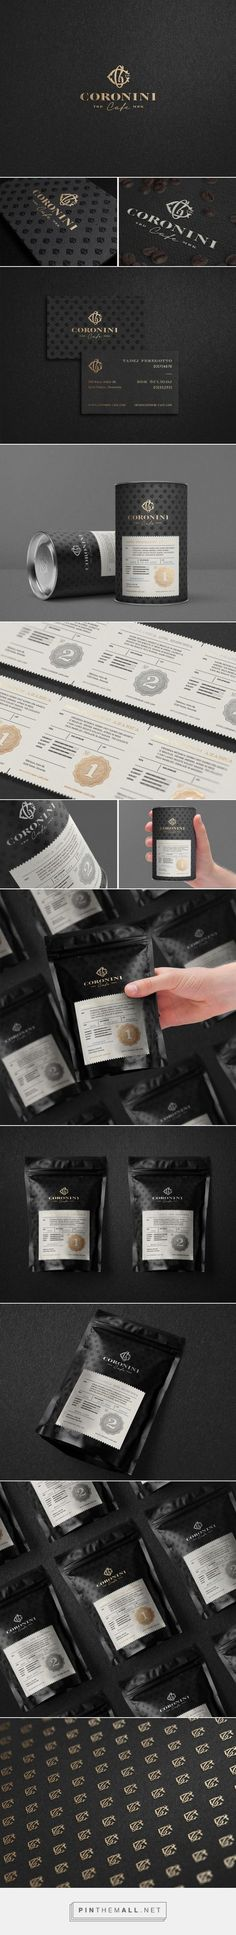 Coronini Cafe Coffee packaging designed by Milovanović (Slovenia) - http://www.packagingoftheworld.com/2016/02/coronini-cafe.html: